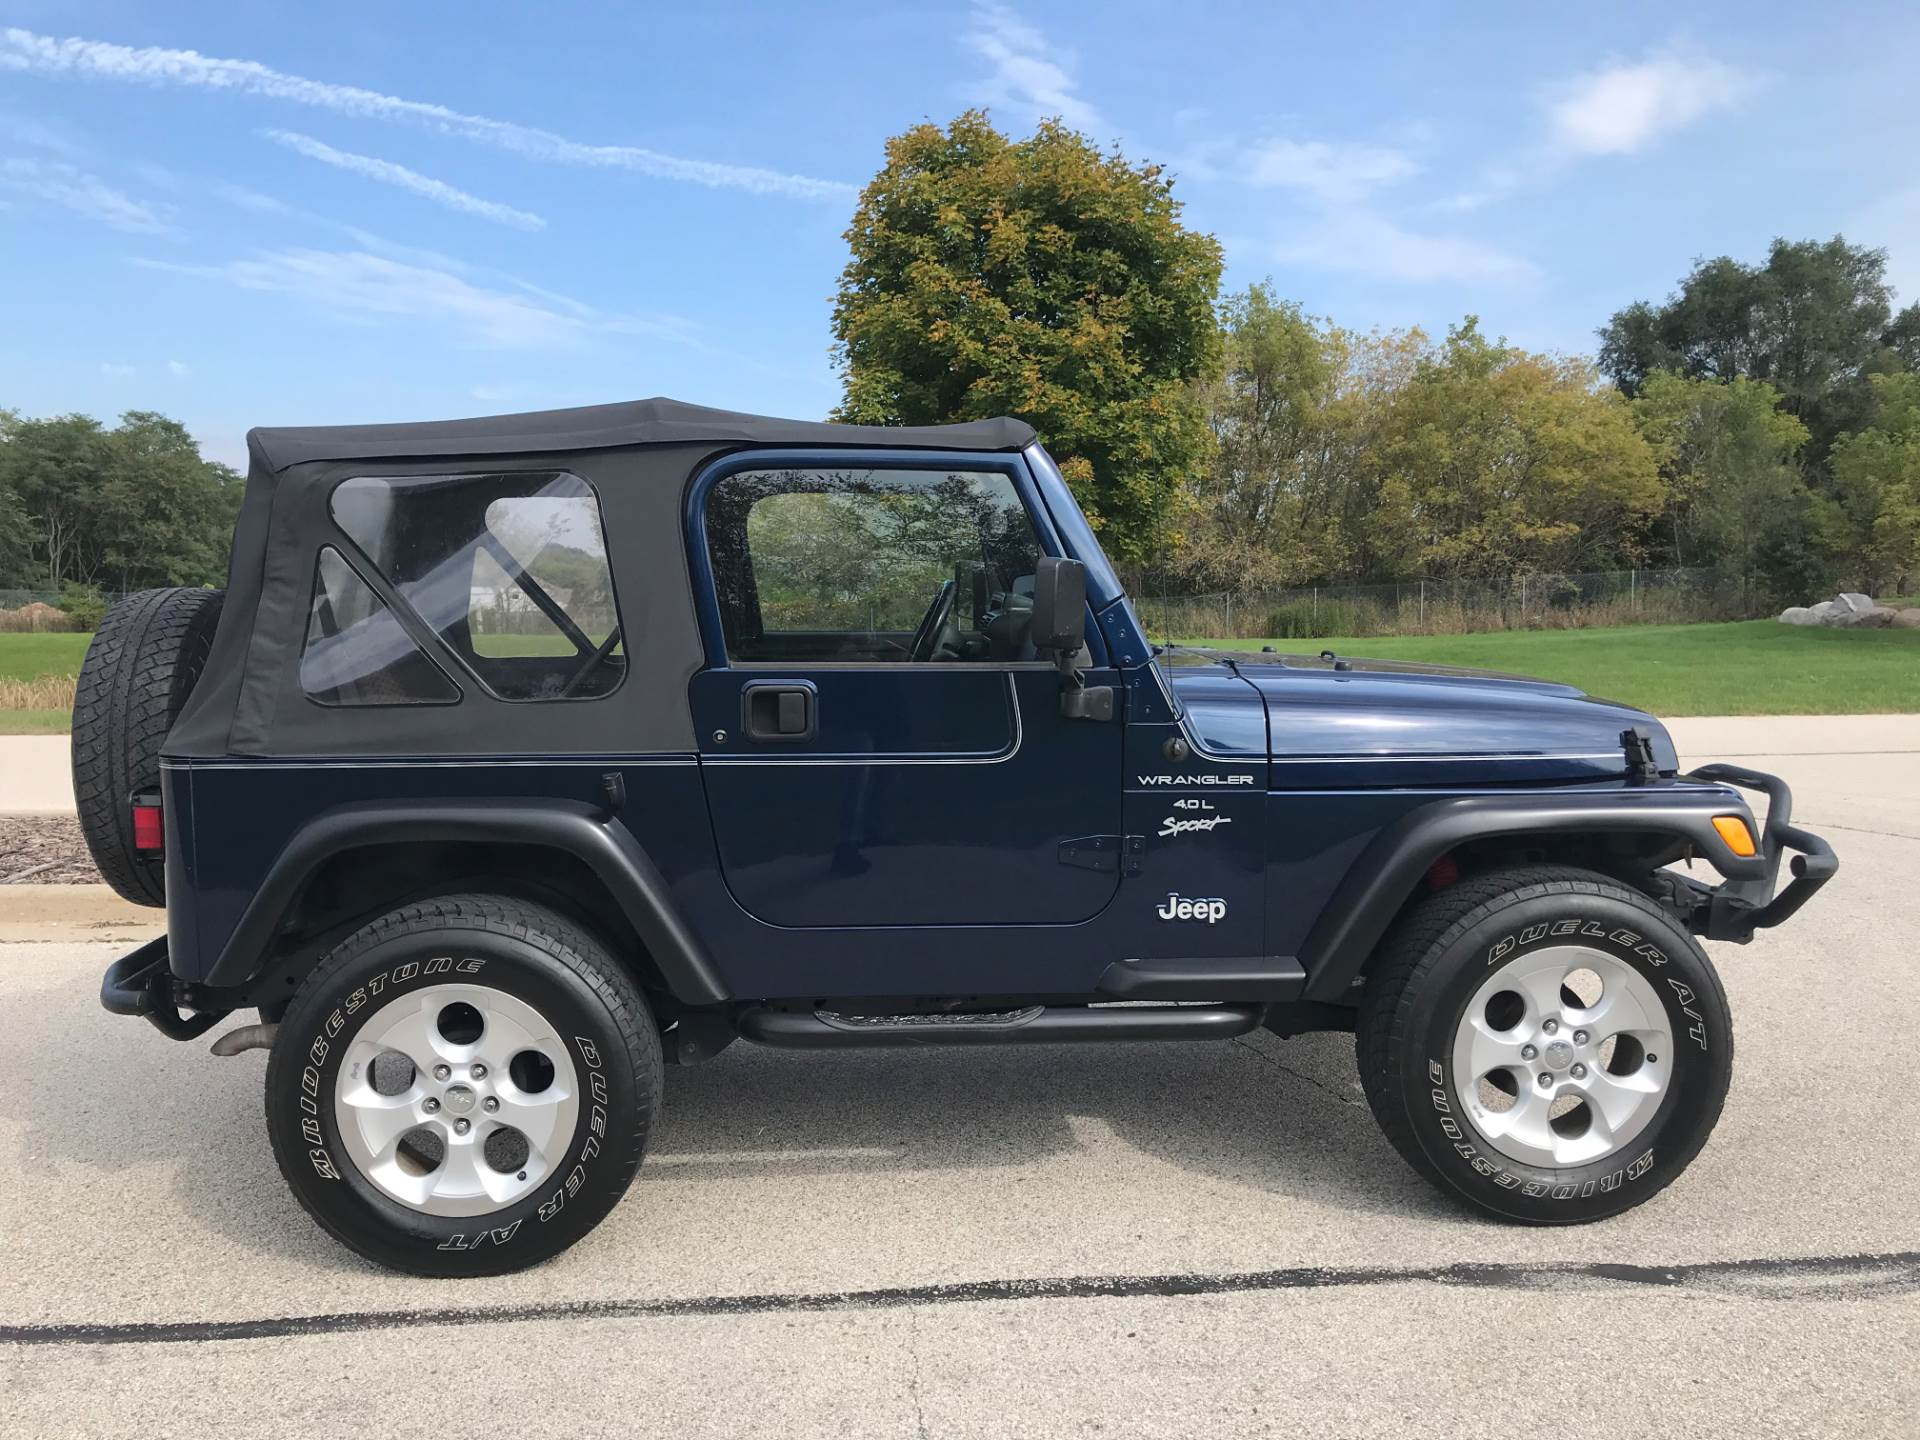 2000 Jeep Wrangler Sport 2dr 4WD SUV in Big Bend, Wisconsin - Photo 1